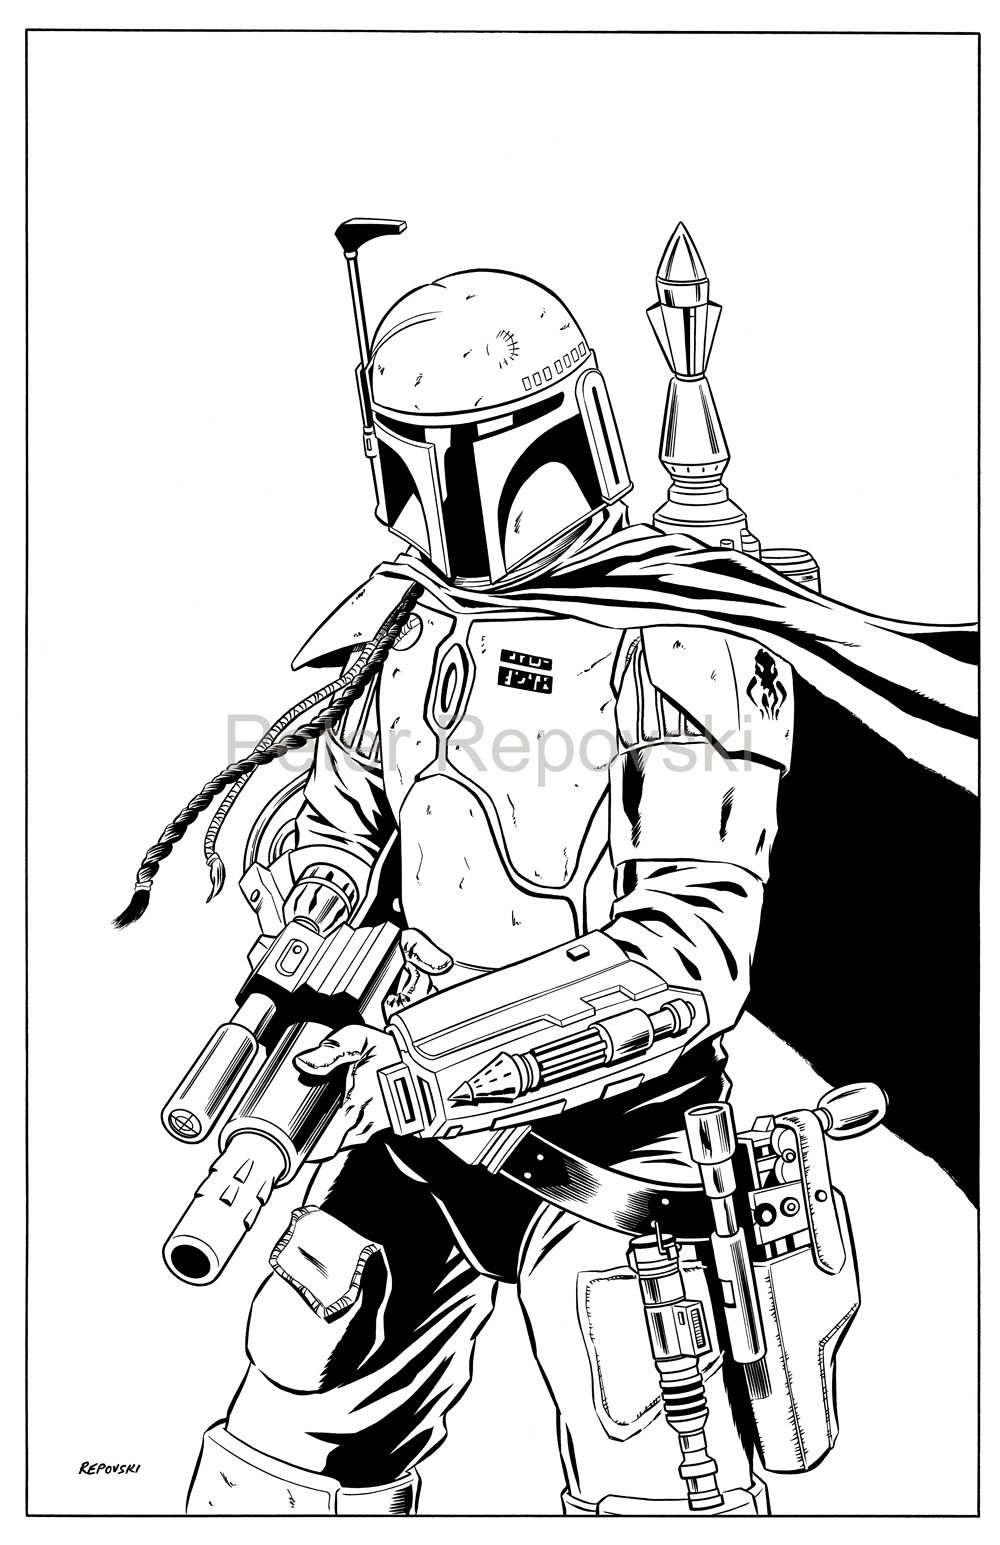 boba fett drawing outline Google Search Star wars cards